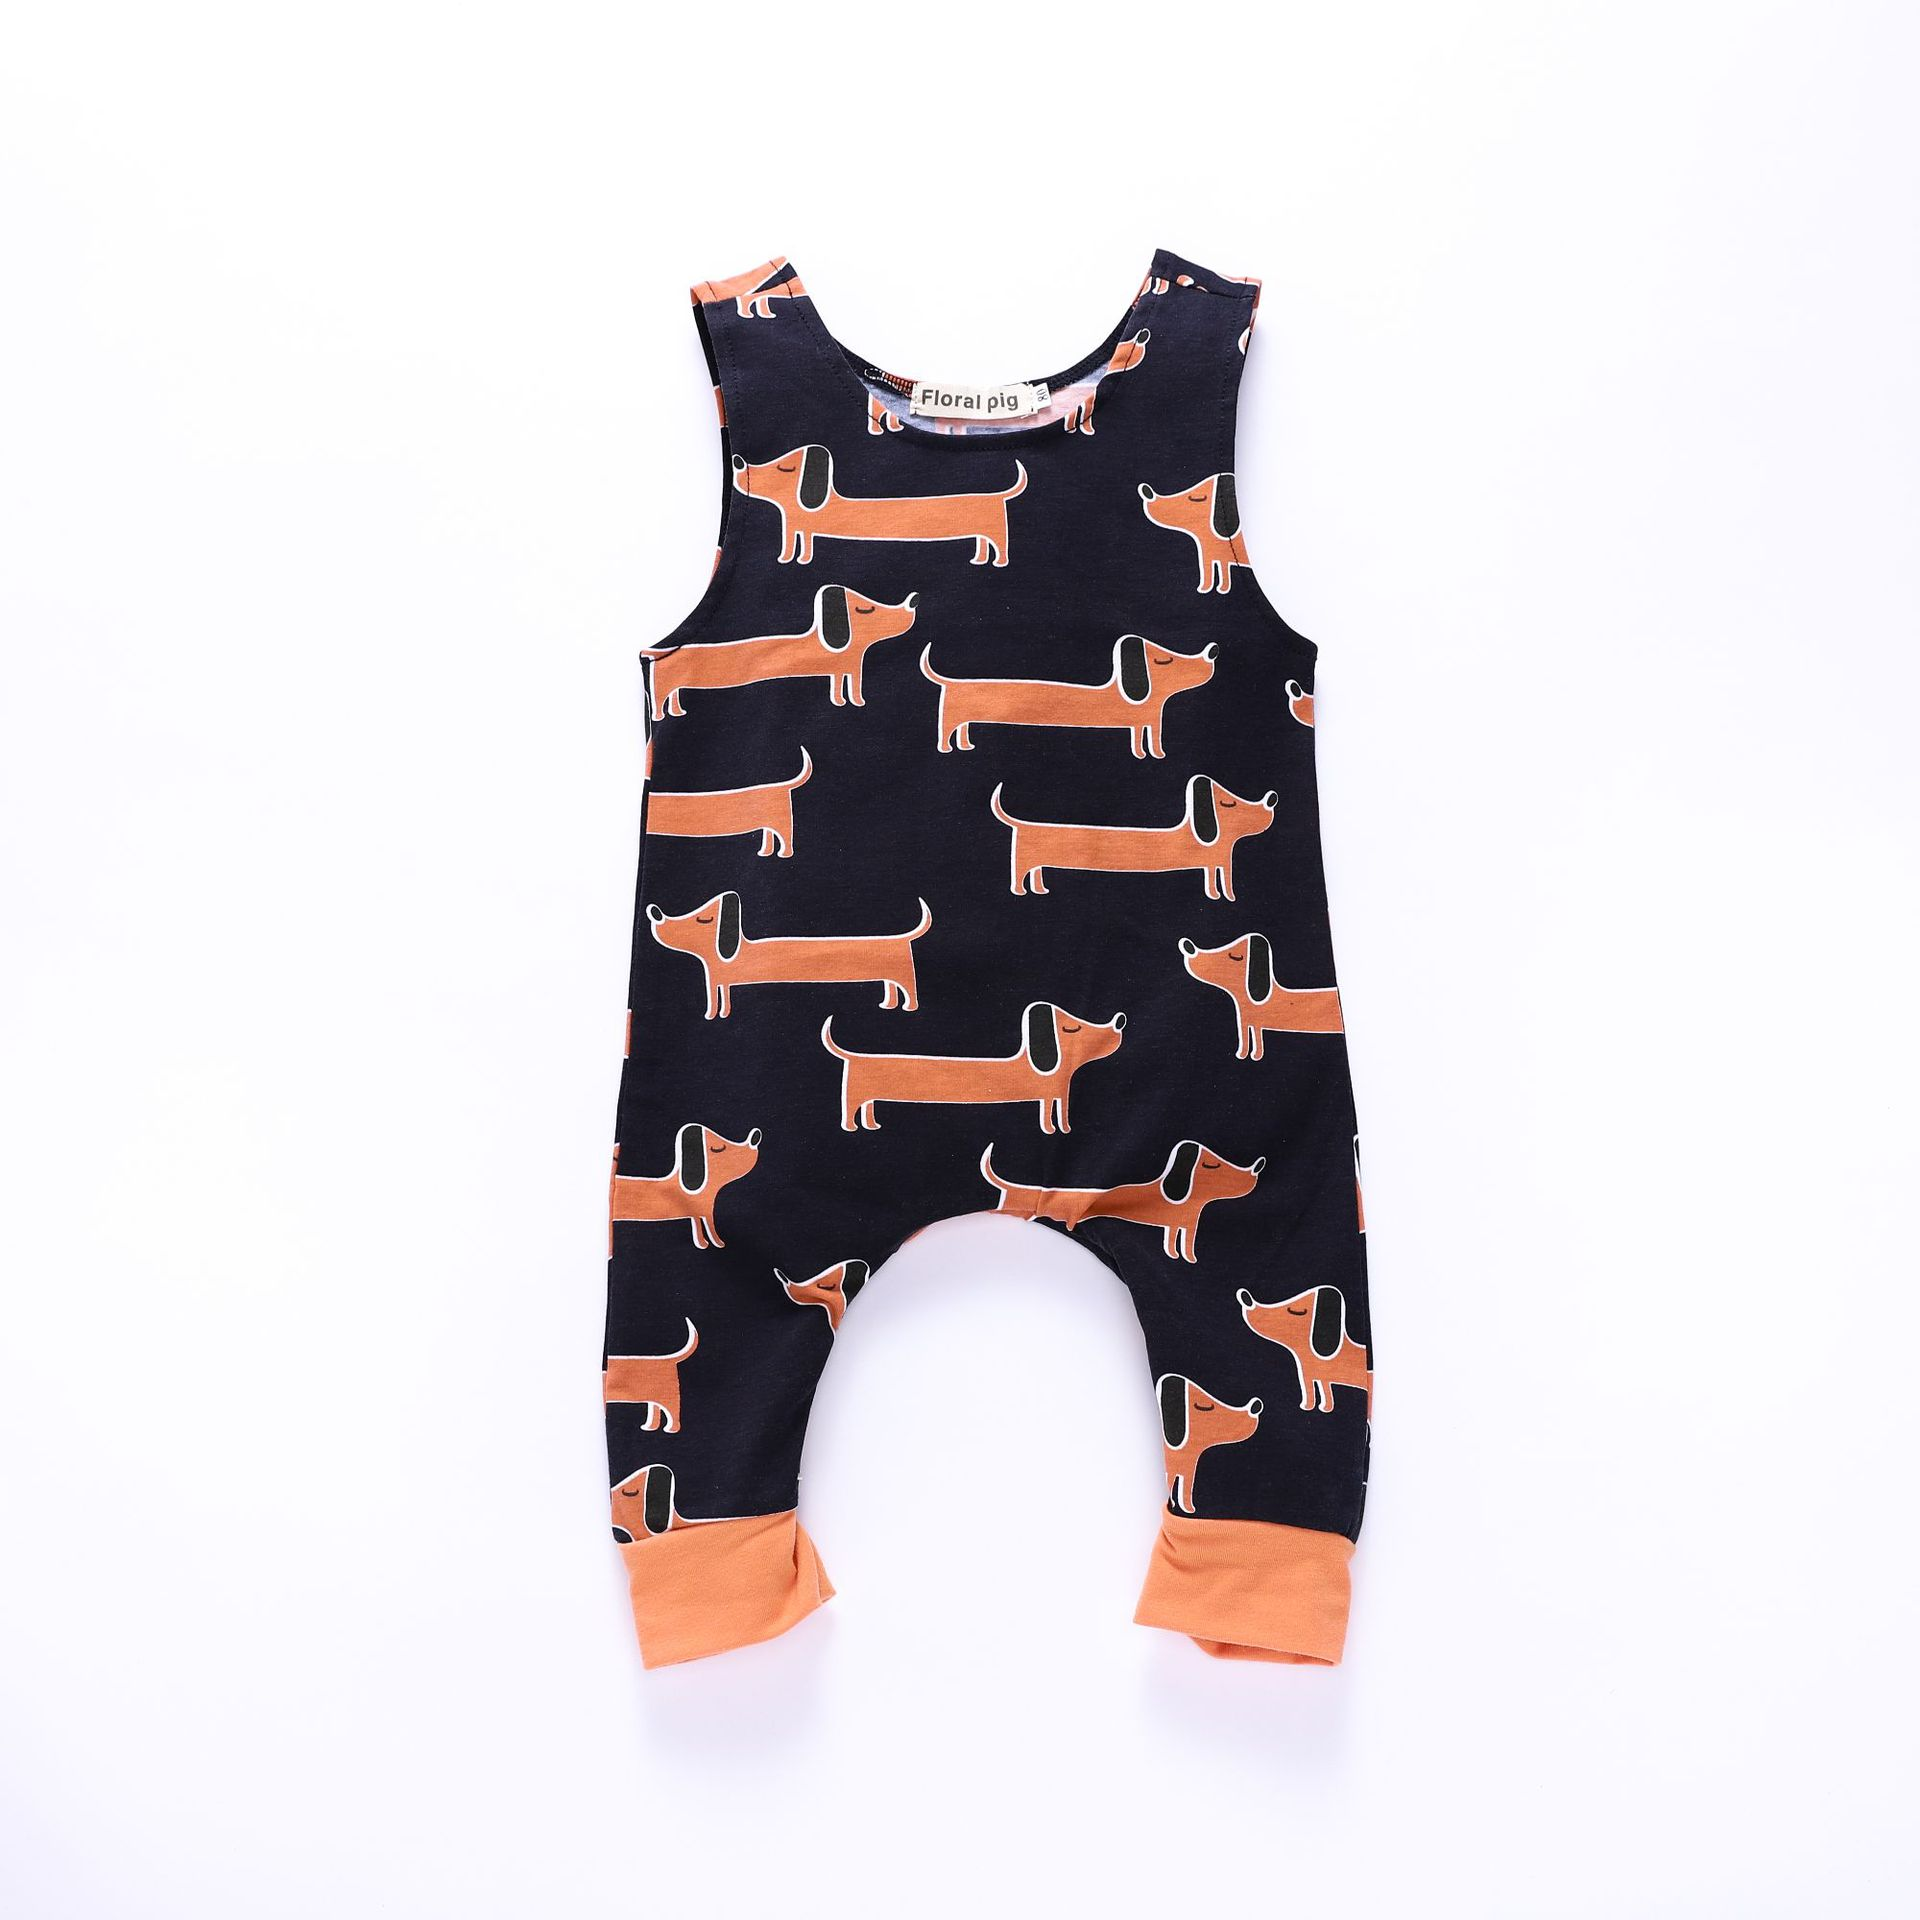 9dd7792ad81 Floral Pig Baby Rompers Sleeveless Newborn Baby Boy Girl Unisex Cute  Dachshund Dog Print Jumpsuit Outfits